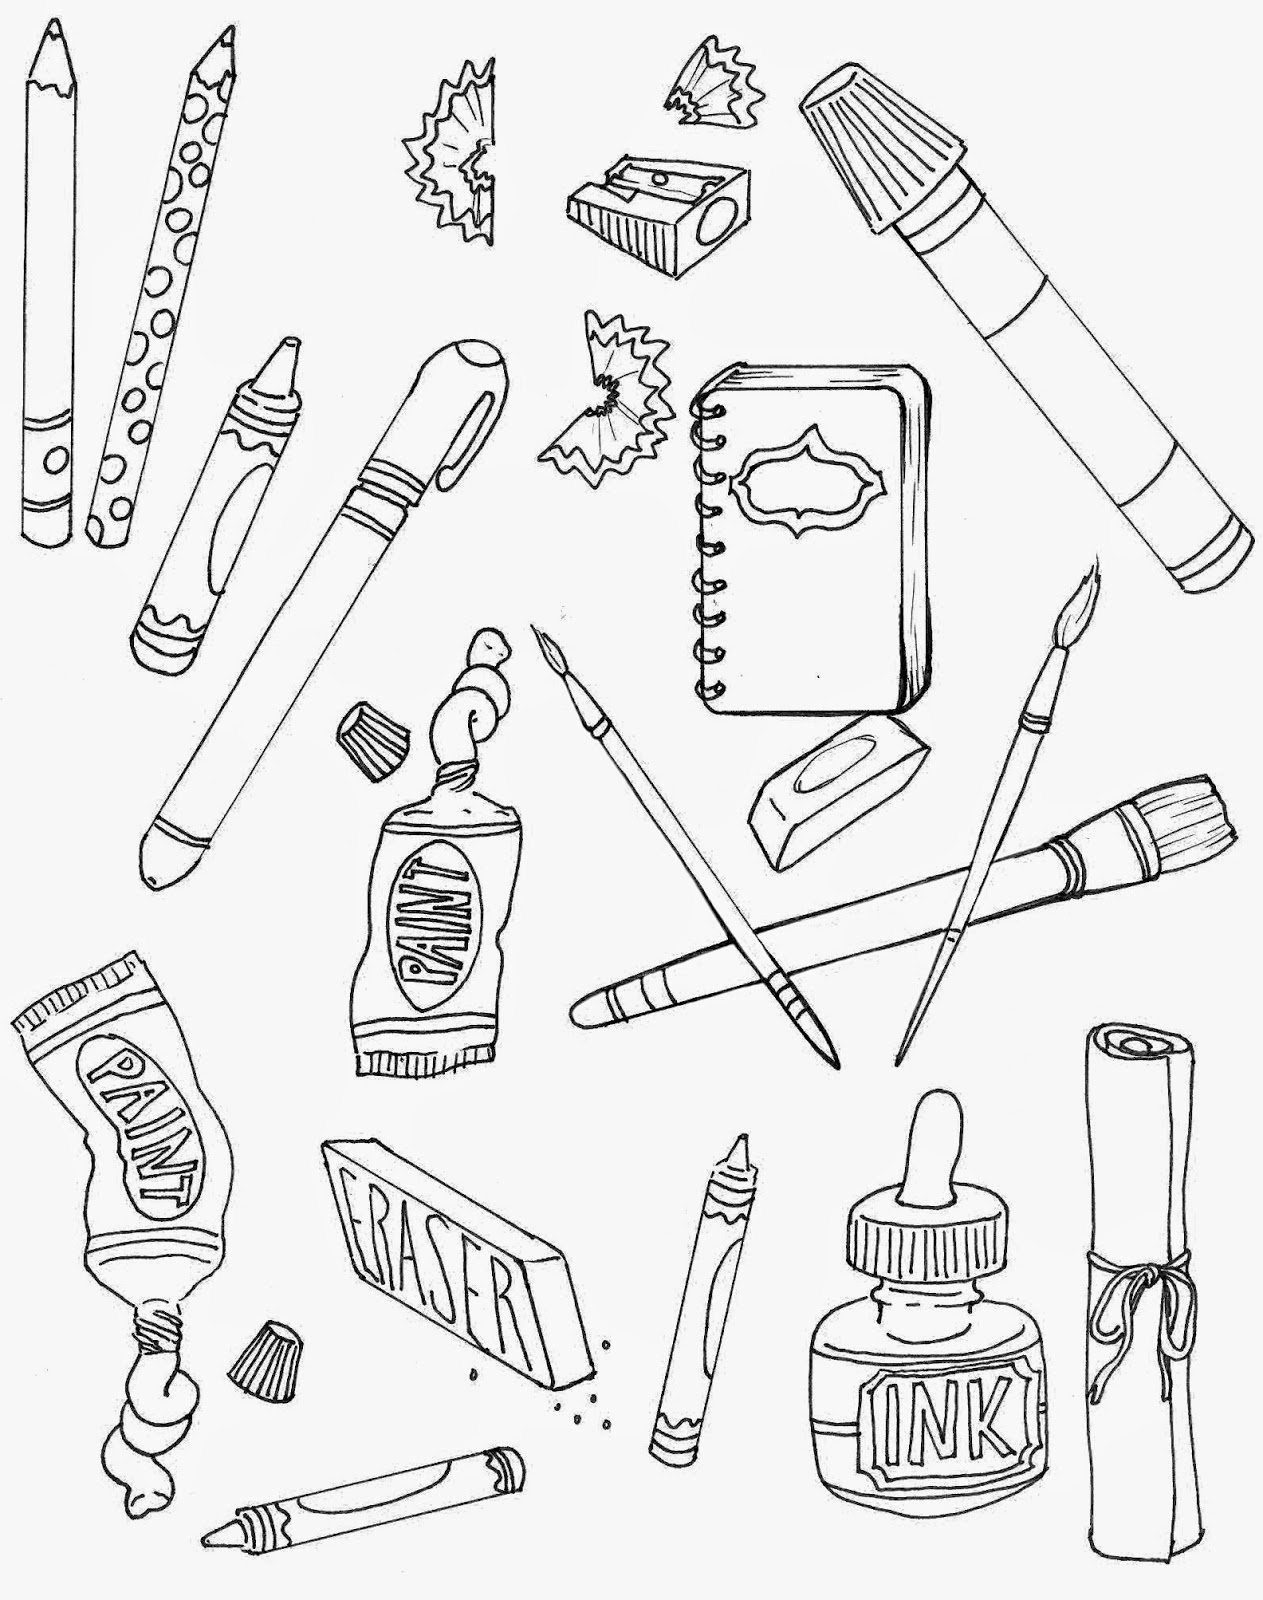 free art supply coloring pages | The Spinsterhood Diaries: September 2014